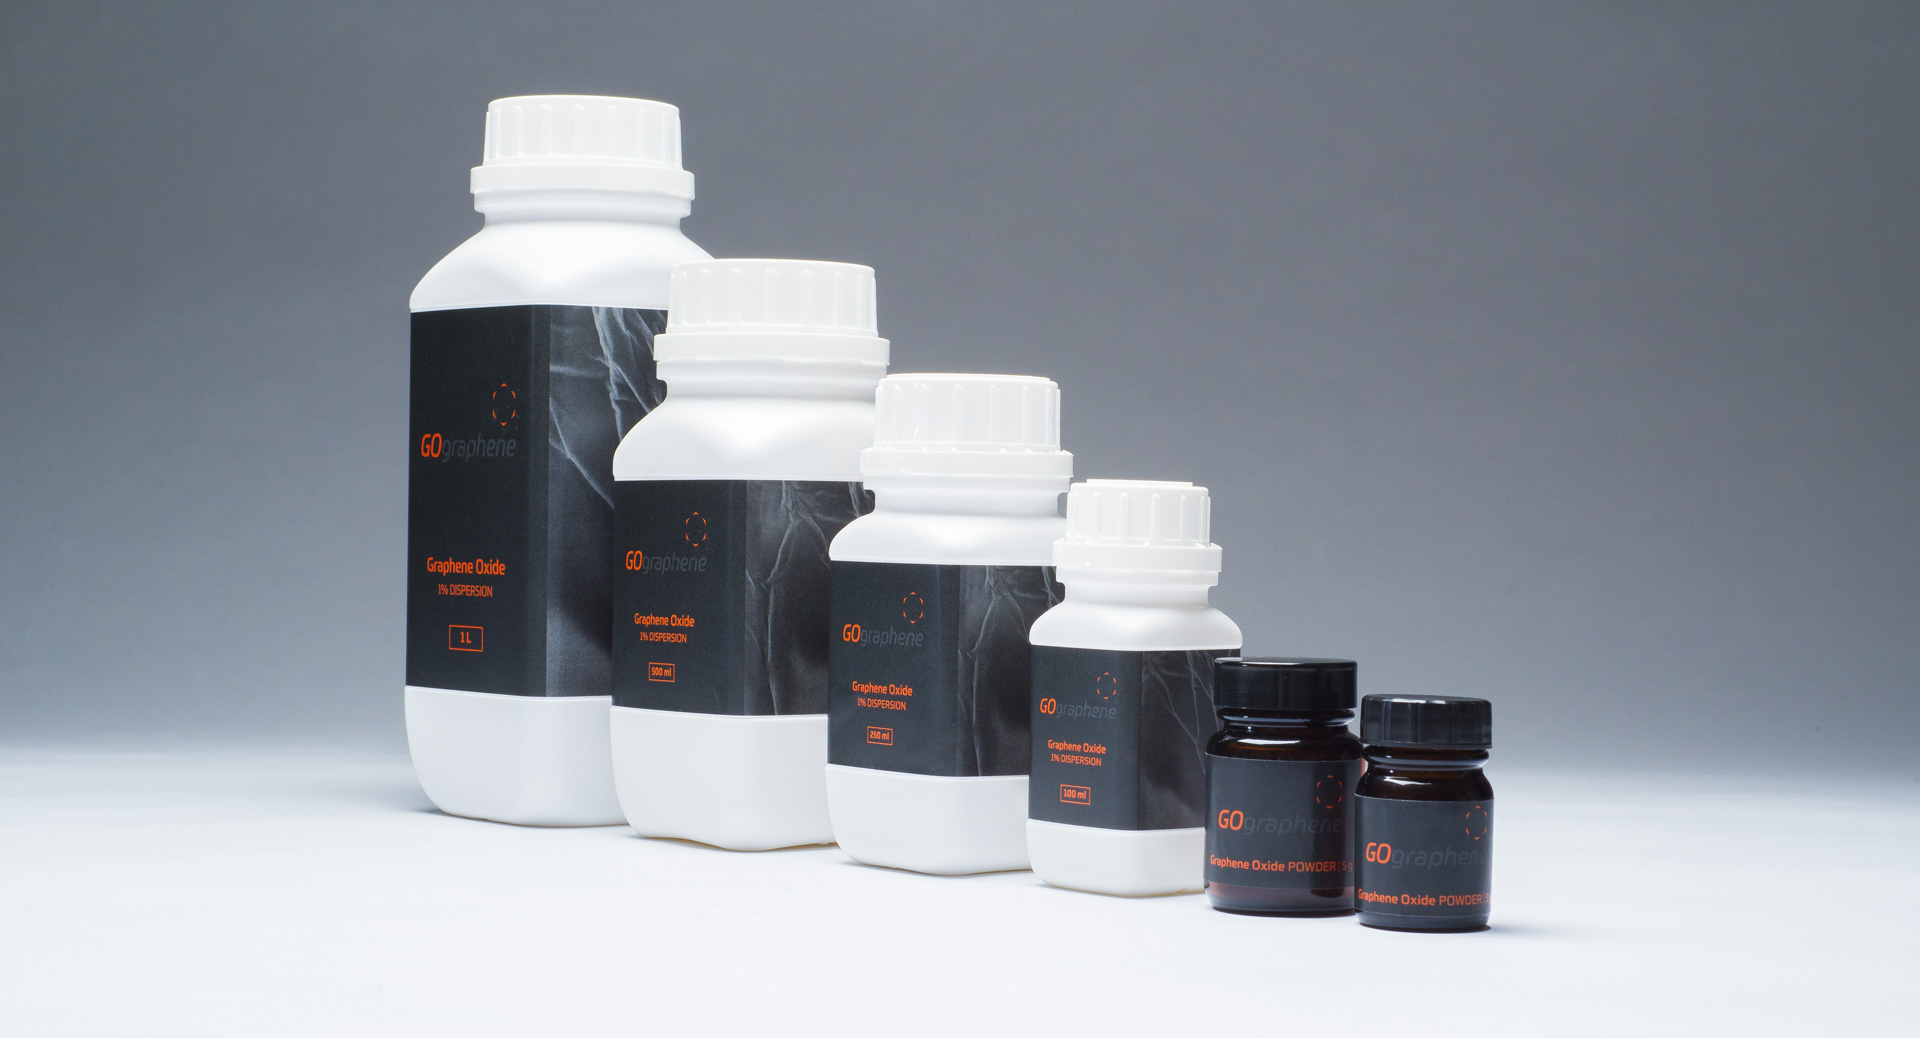 go graphene branding and product packaging